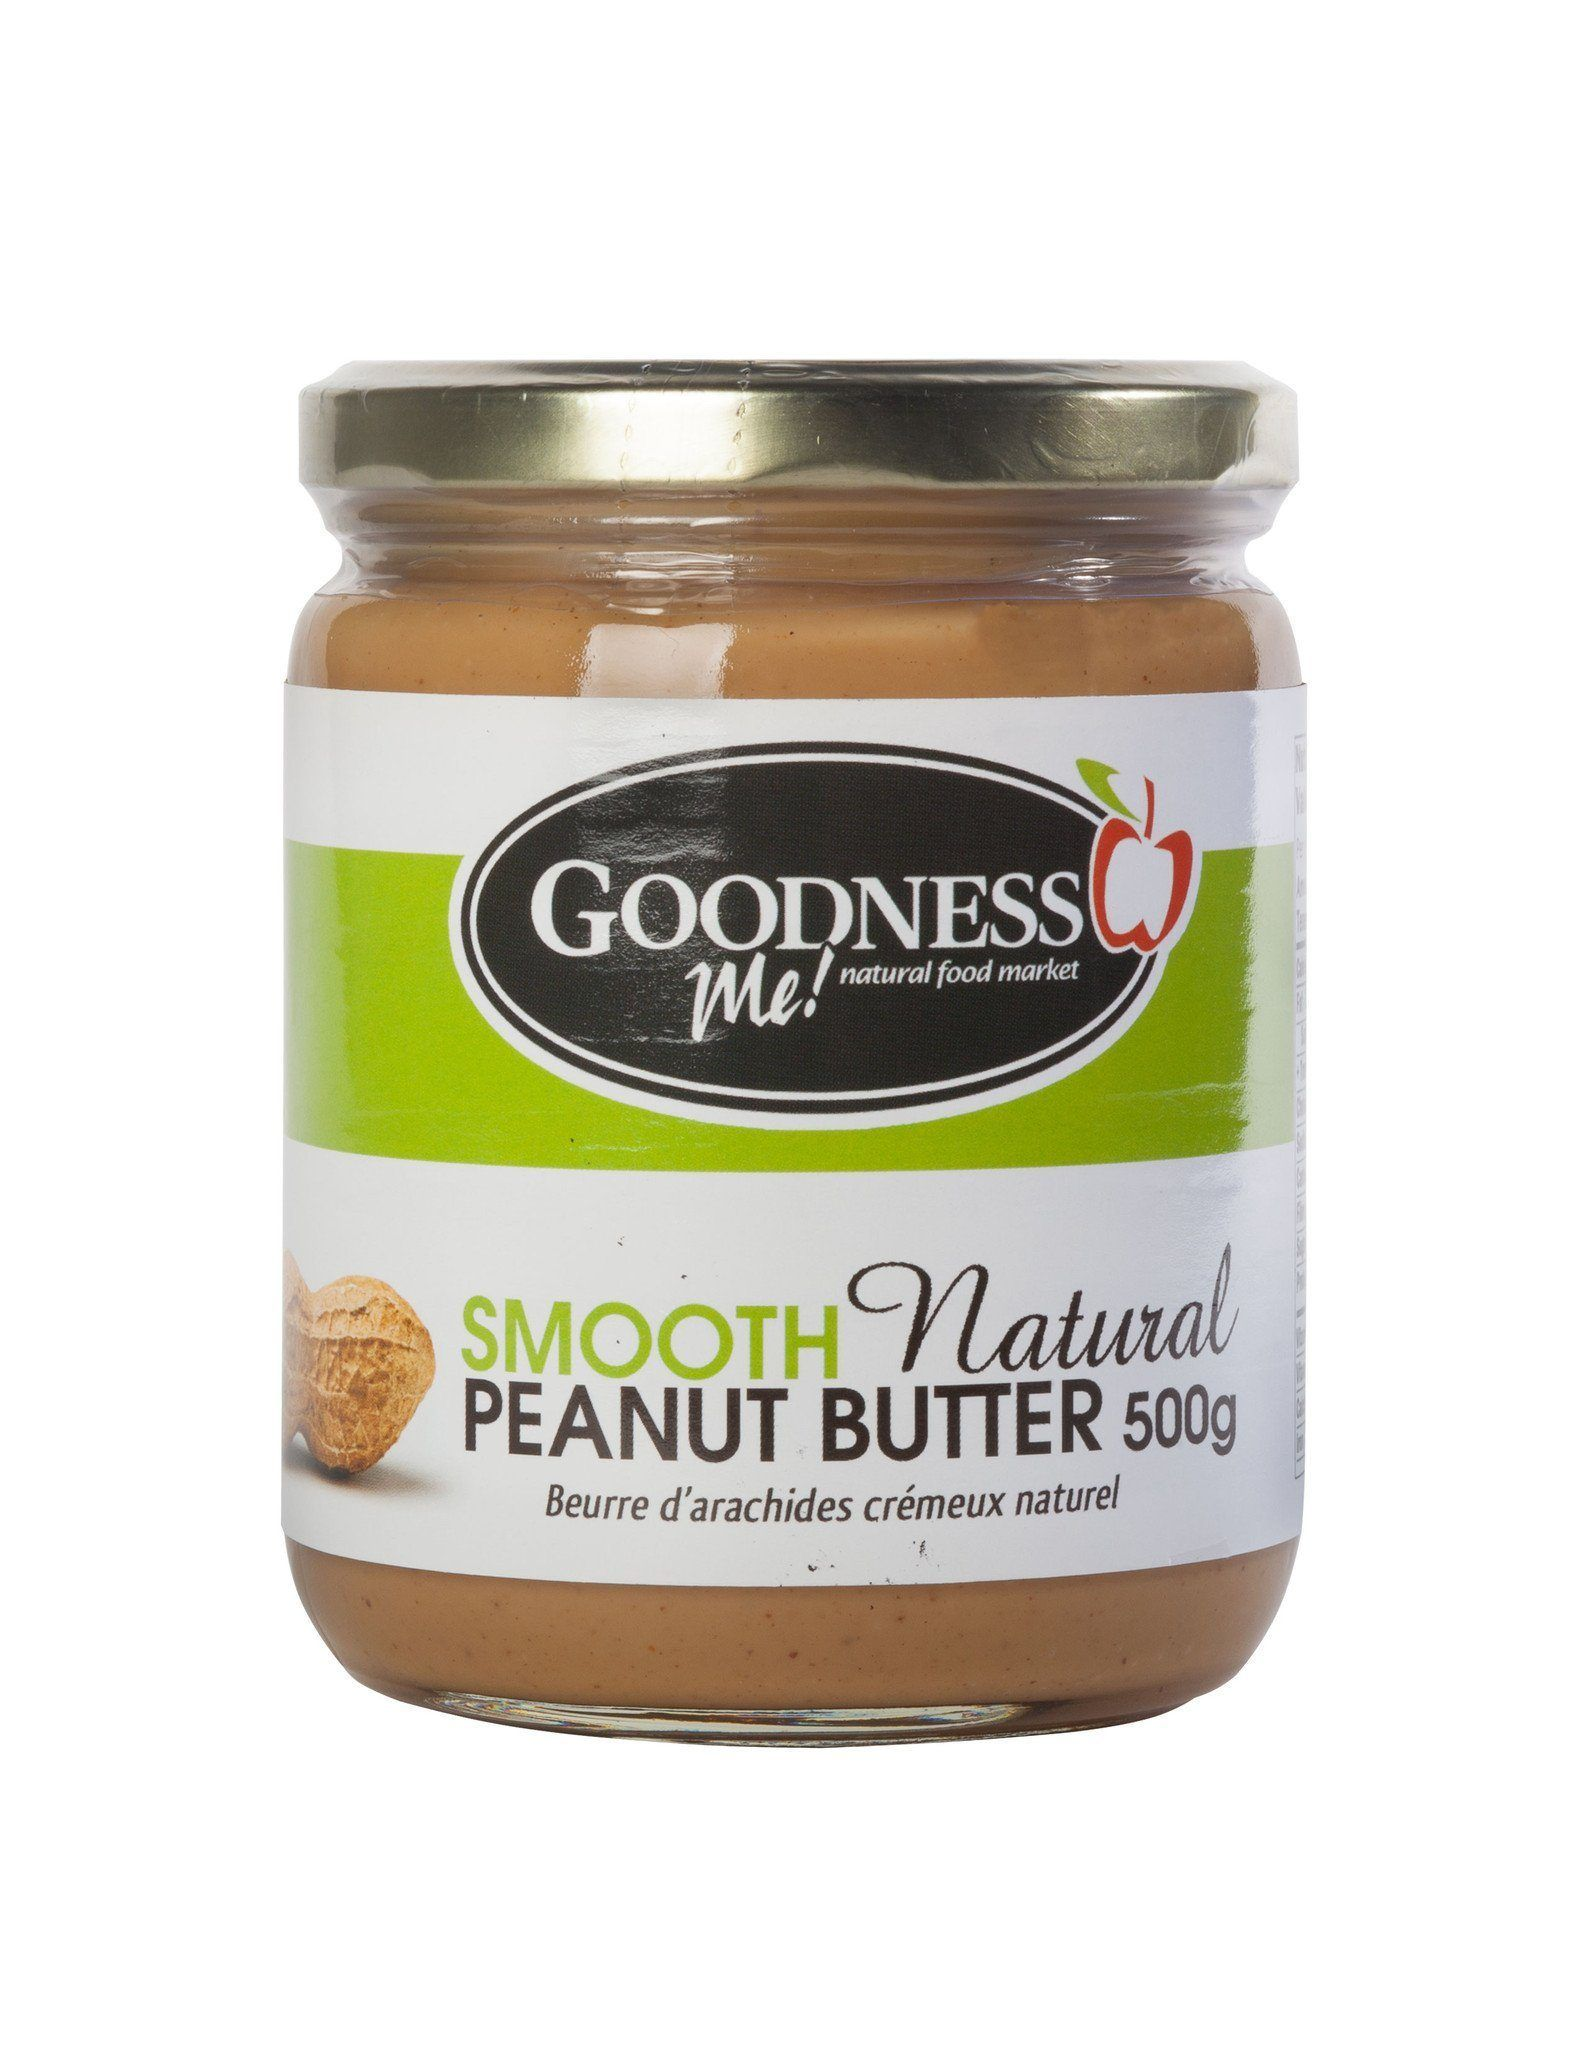 Food & Drink - Goodness Me! - Smooth Peanut Butter, 500g